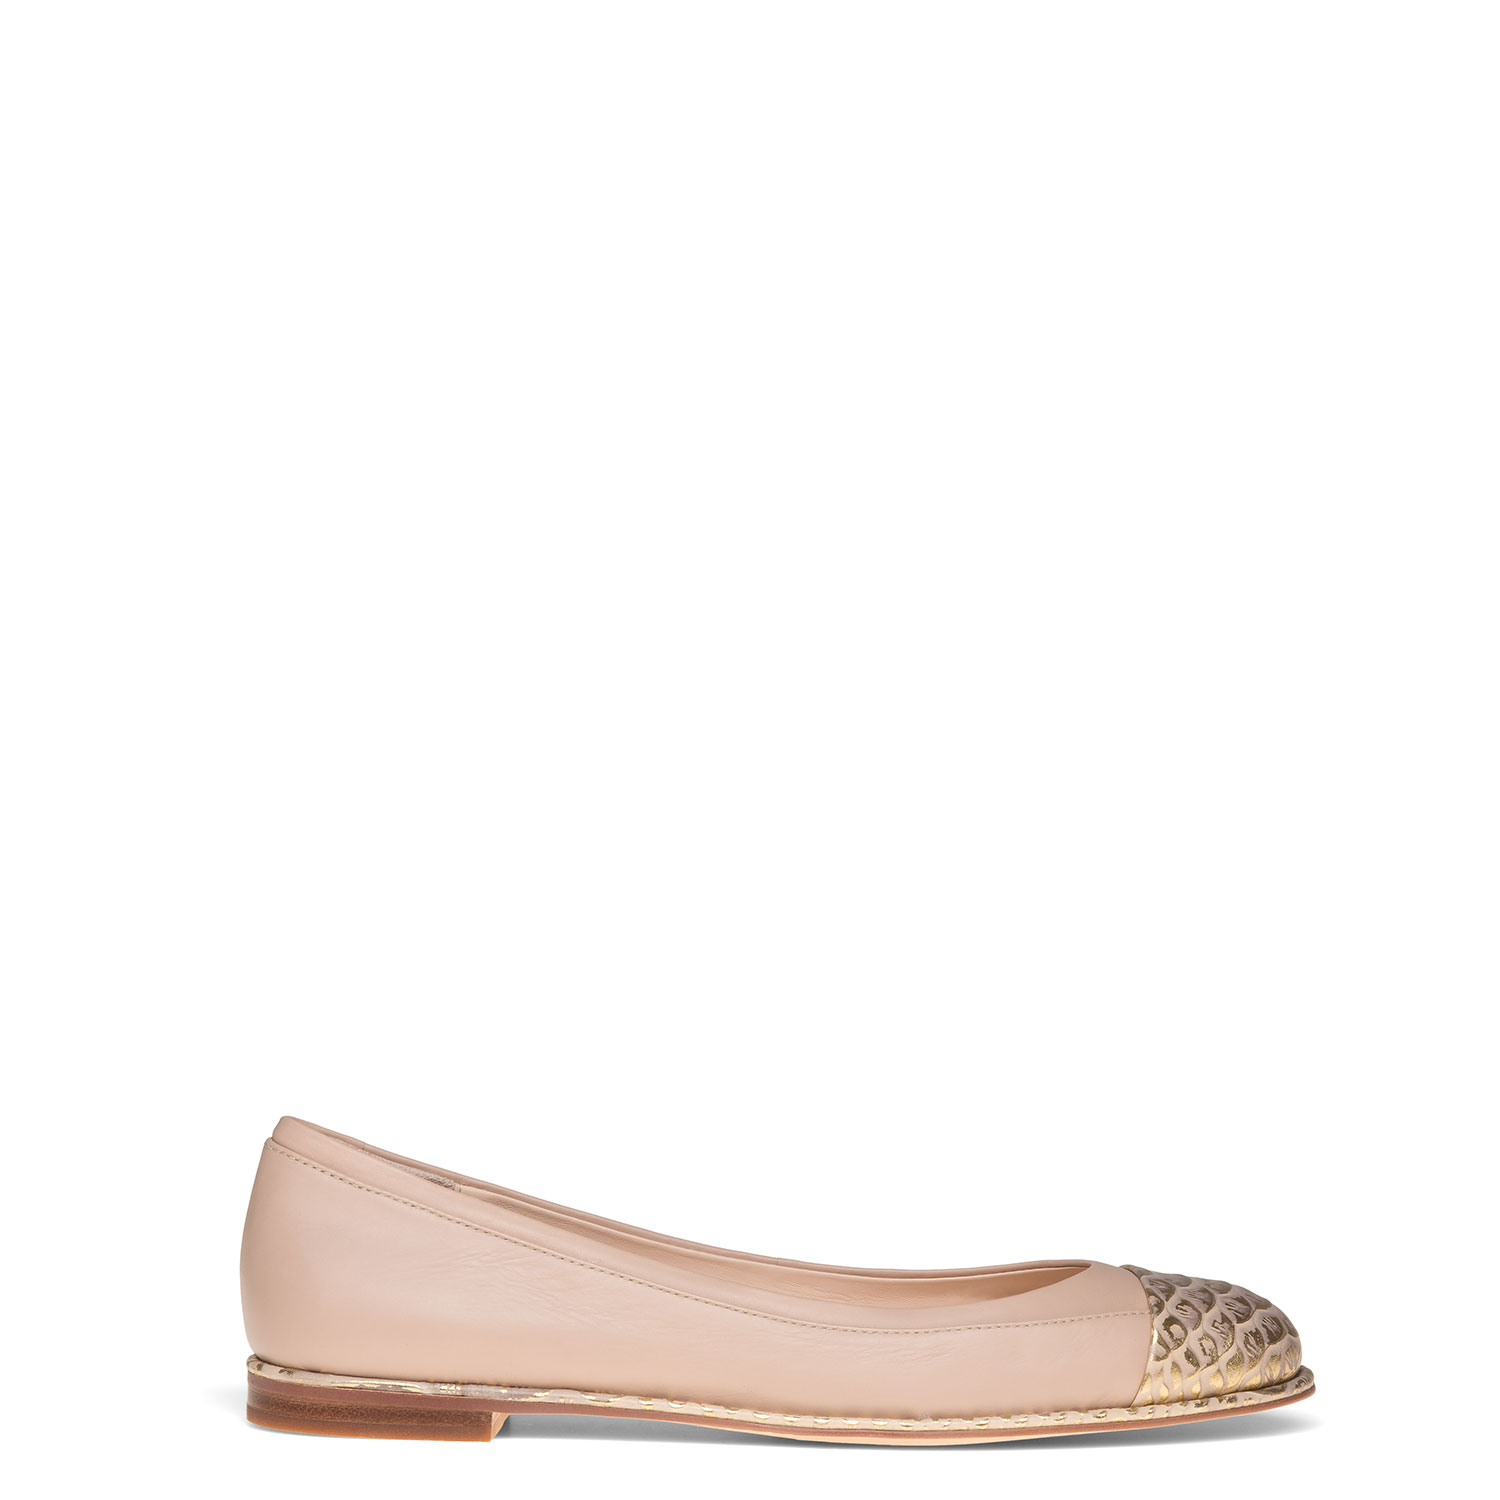 Women's shoes CARLO PAZOLINI MT-AUR2-19